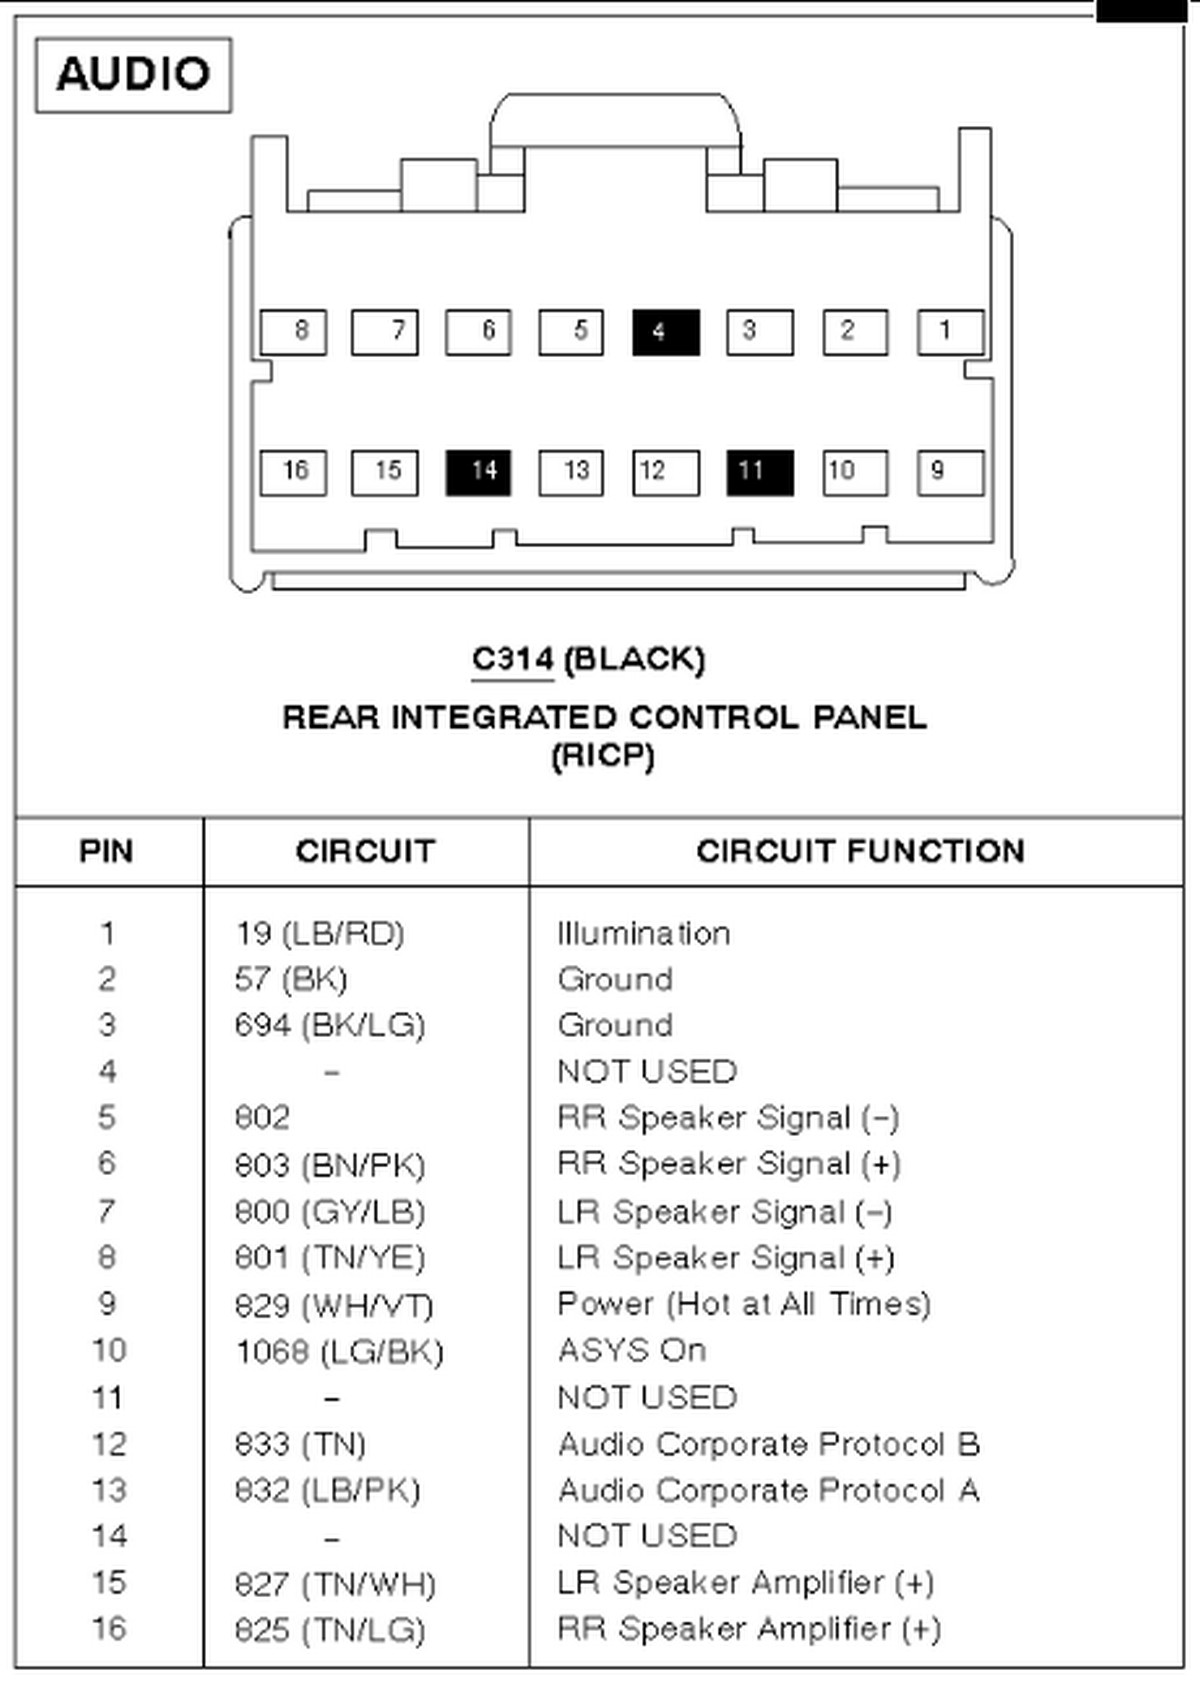 Ford Car Radio Stereo Audio Wiring Diagram Autoradio Connector Wire 07 Mustang Schematic Expedition Eddie Bauer 2001